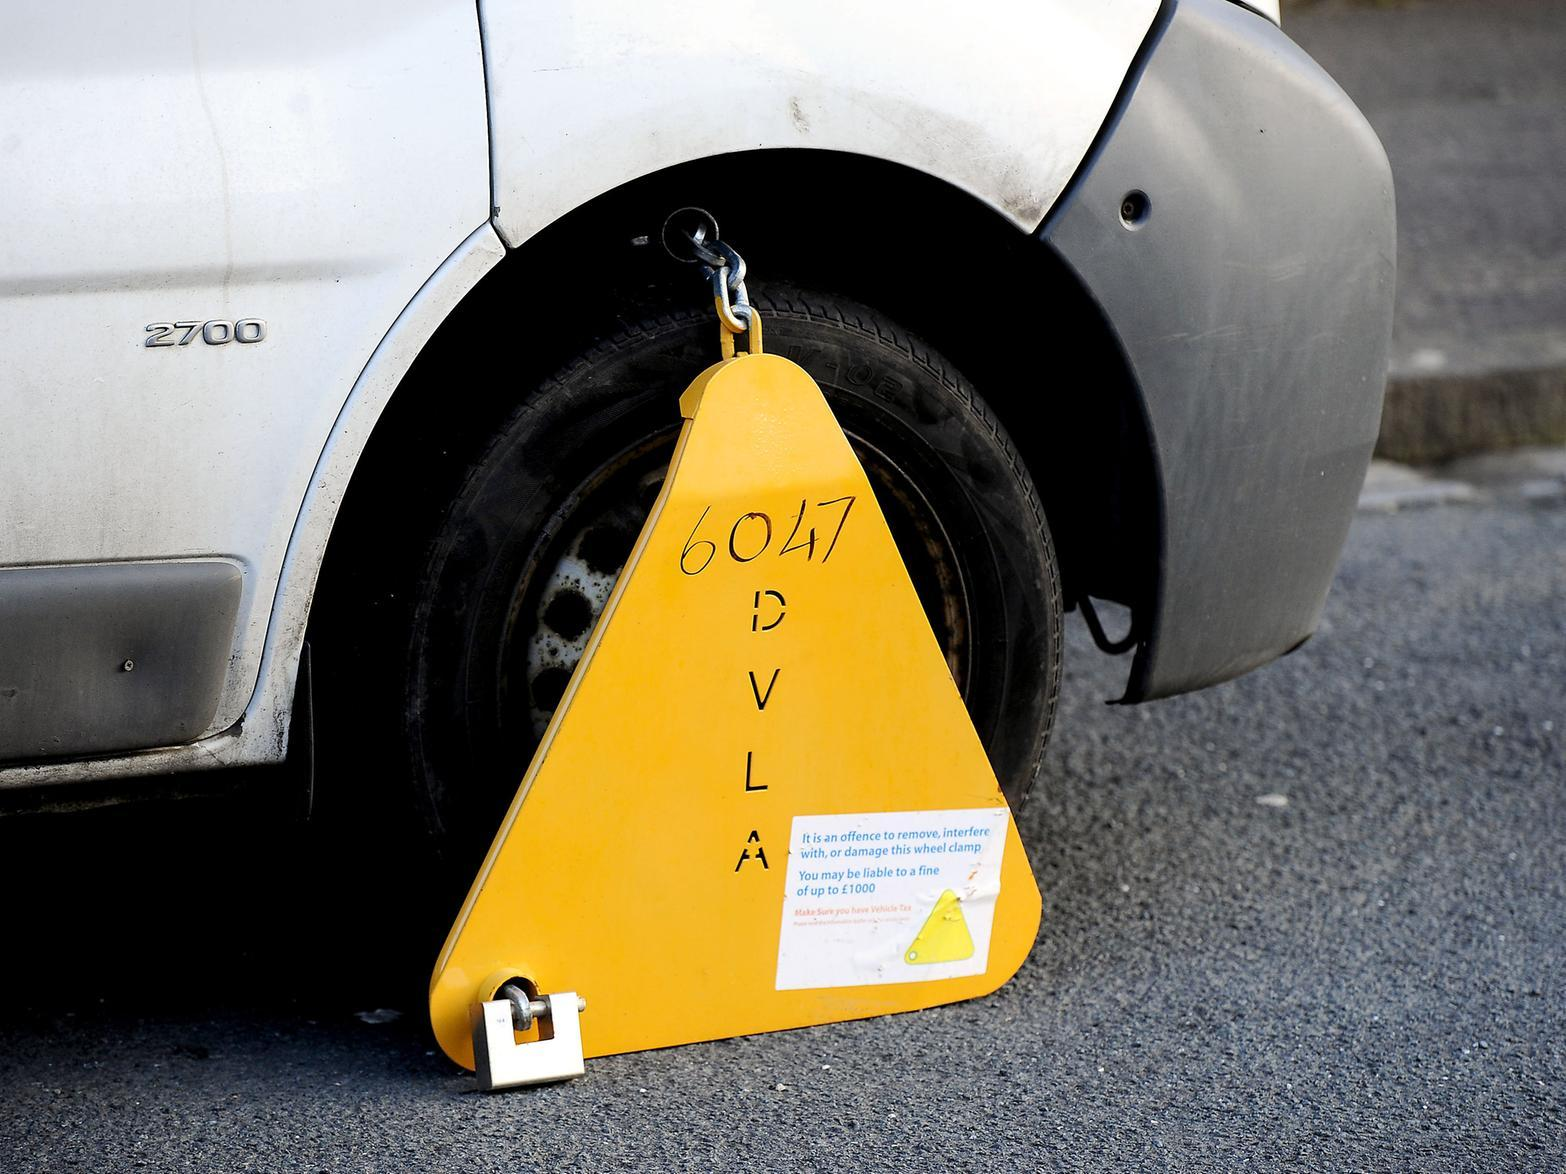 Edinburgh drivers who park on yellow lines or in public bays instead of paying for tickets could now be towed or clamped